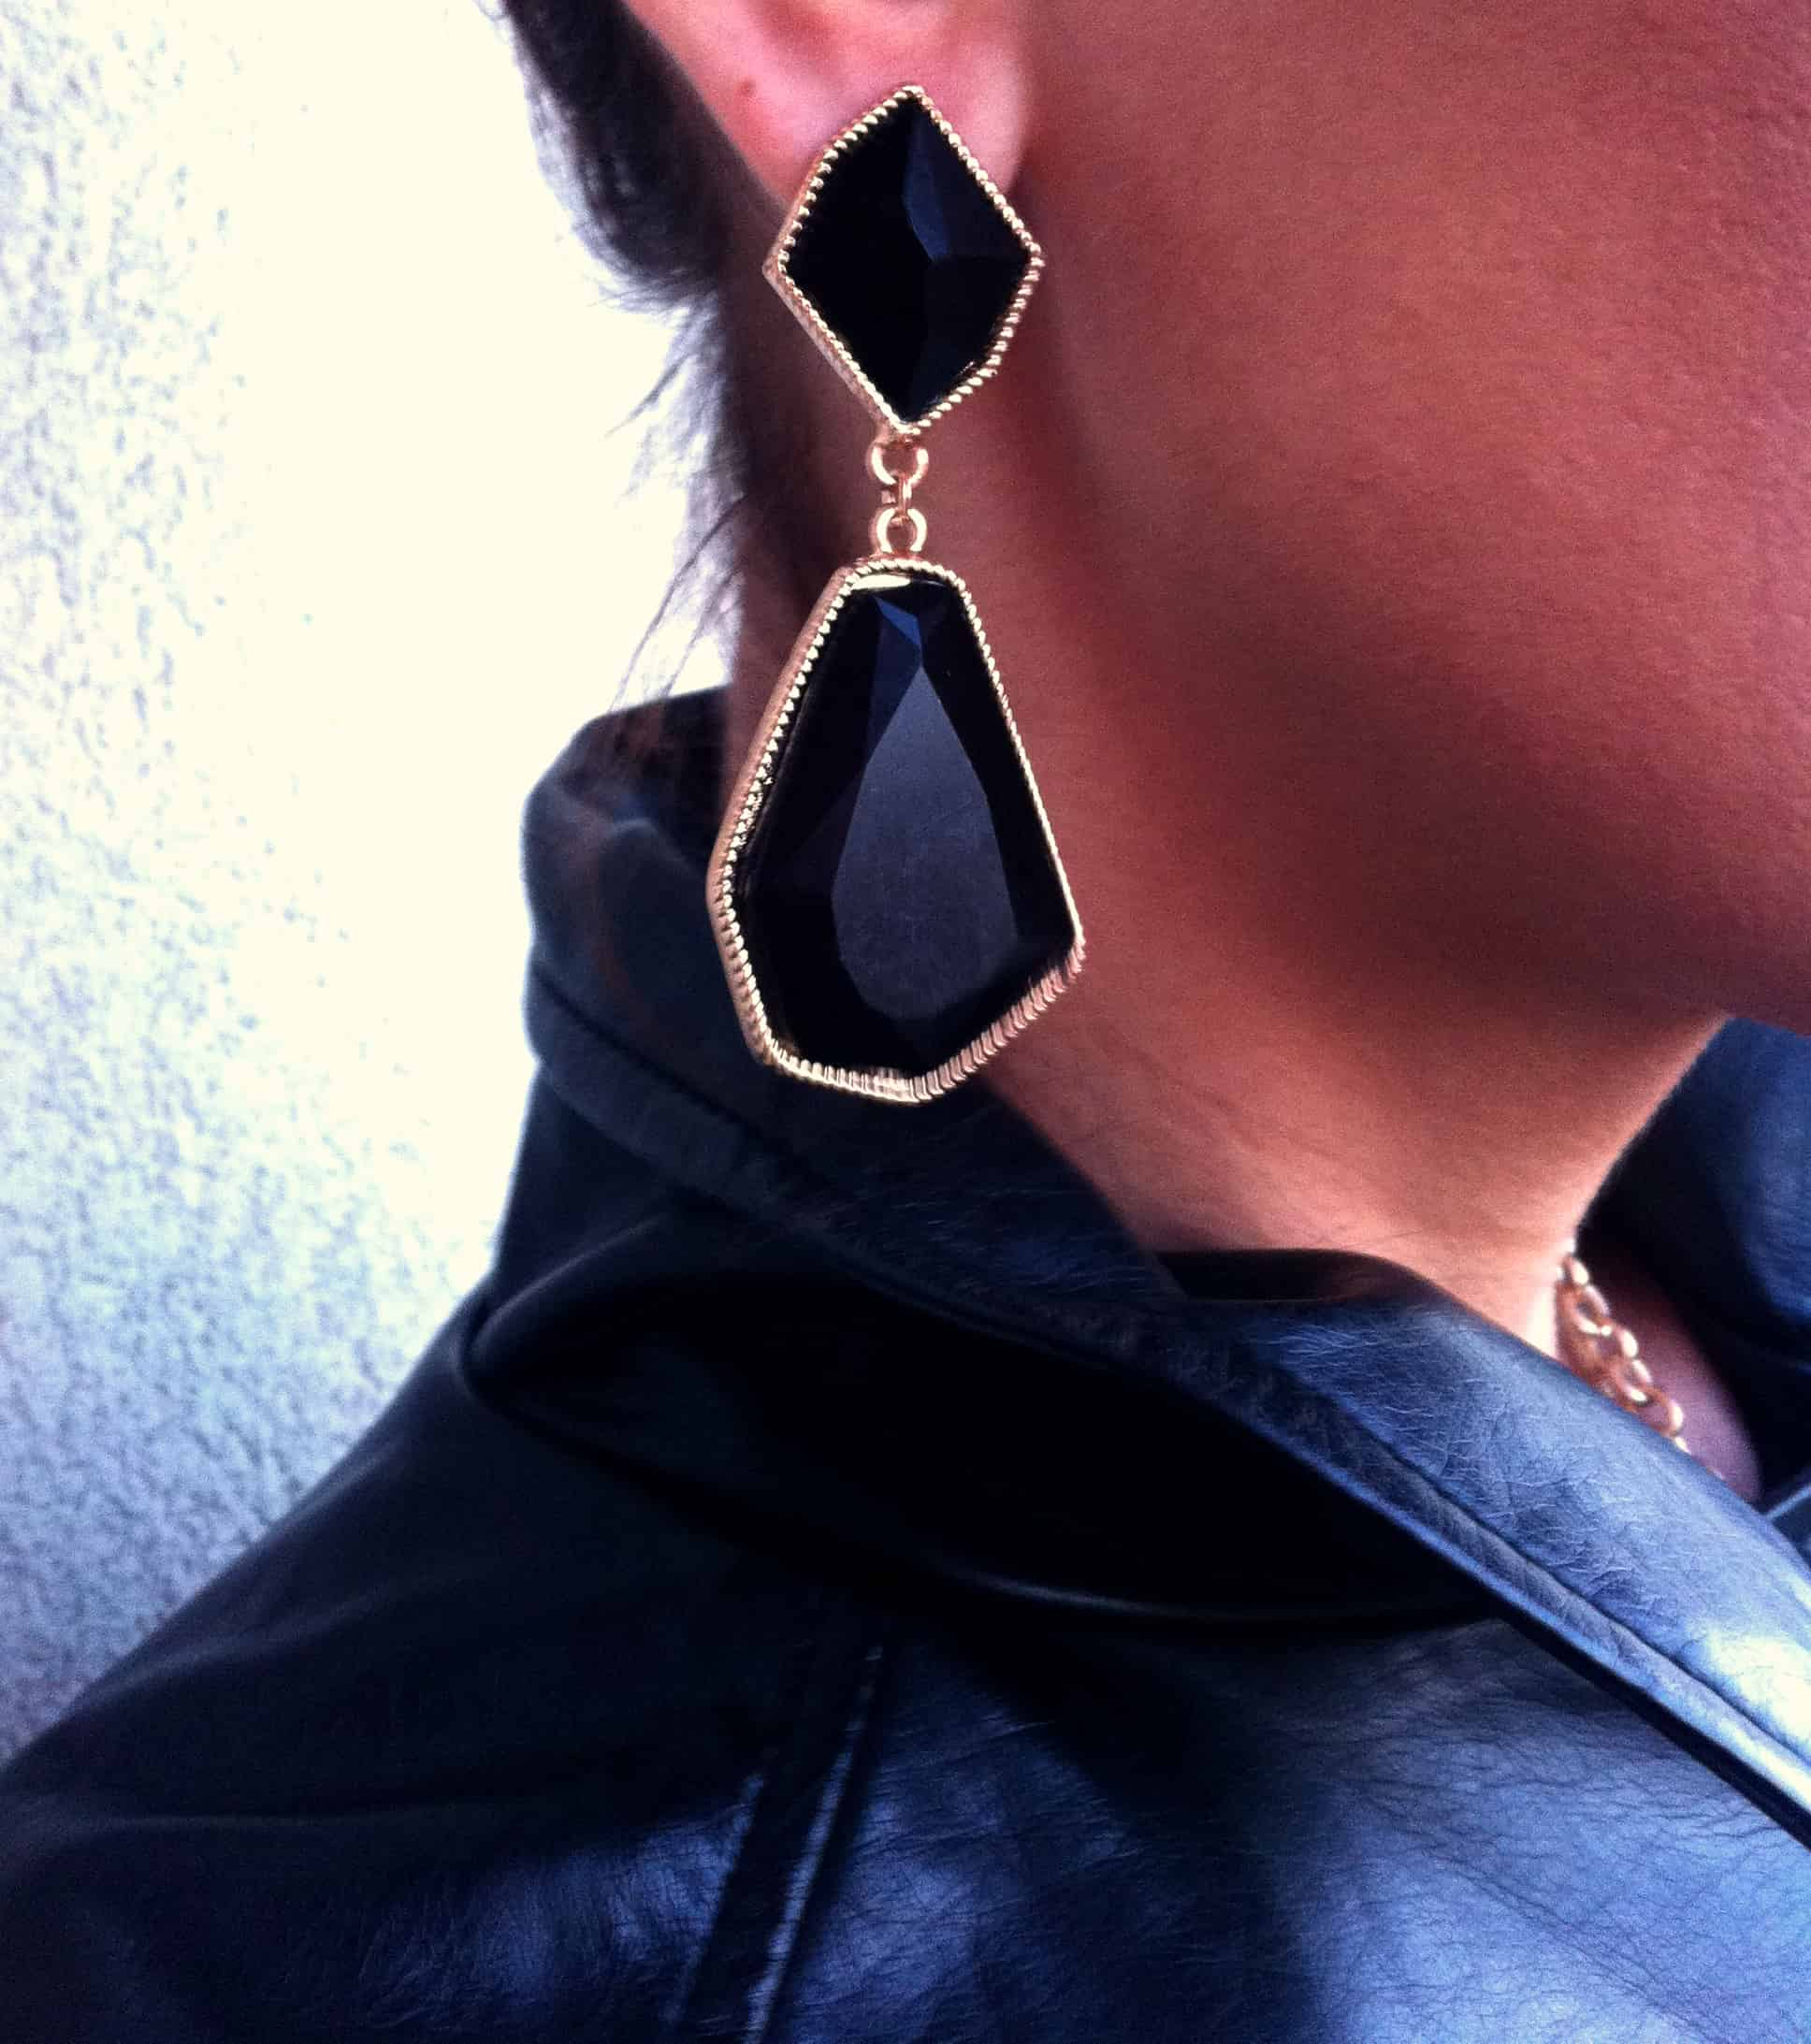 ringa and tings earrings Bling It Up! The Hidden Power Of Statement Jewellery